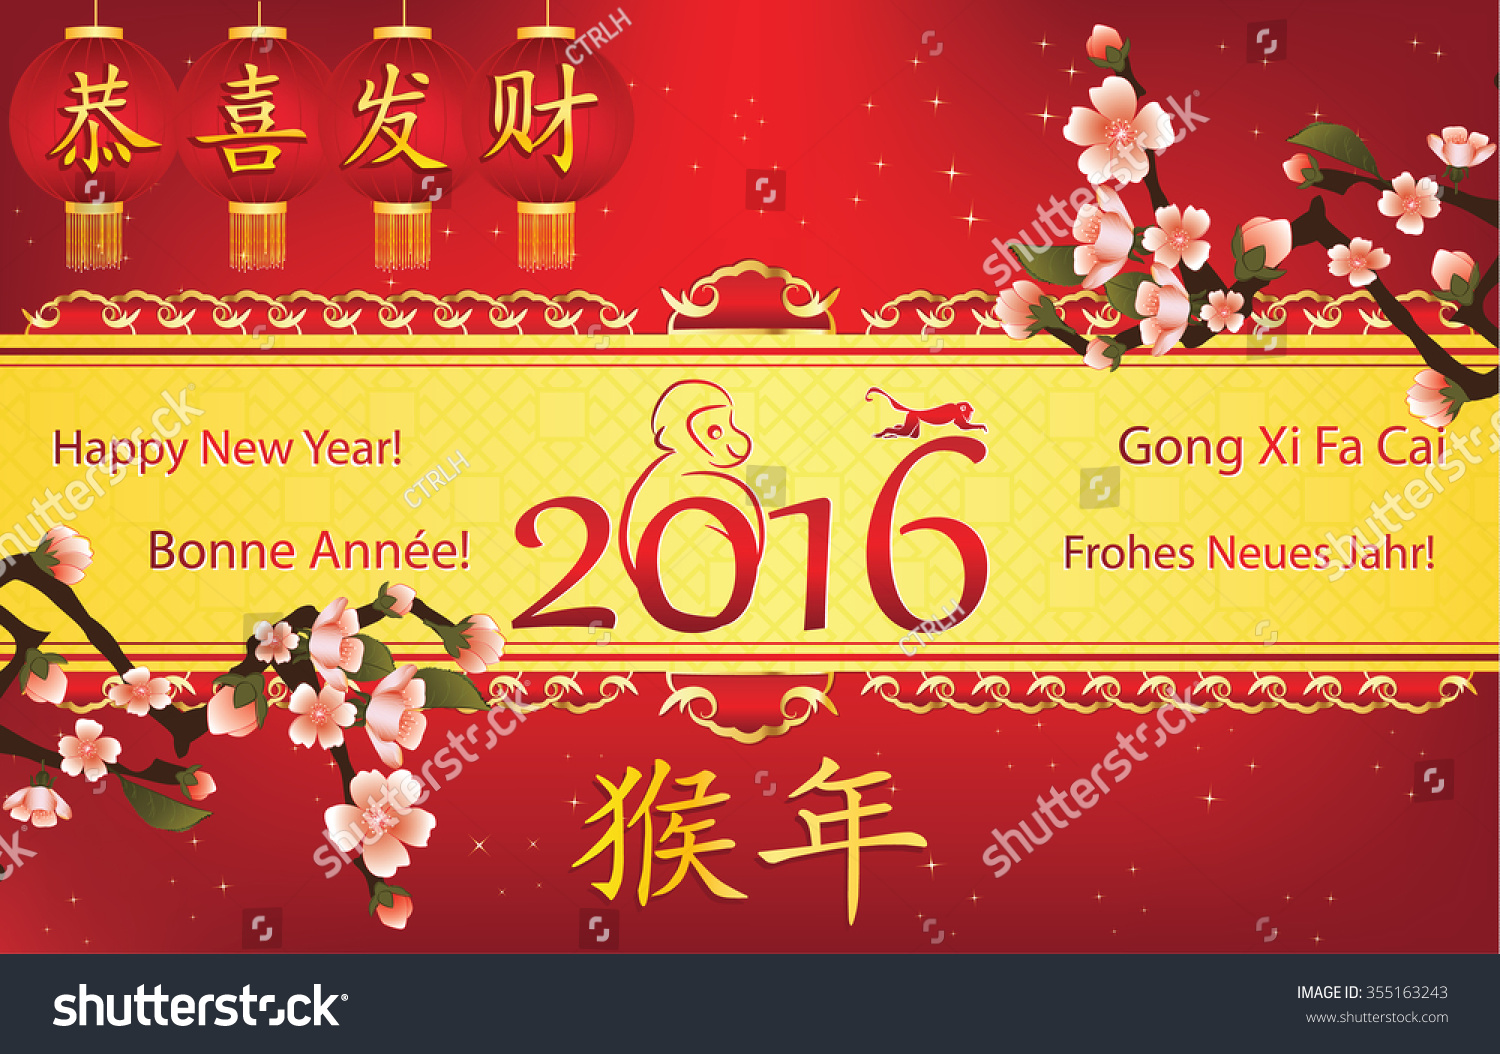 chinese new year 2016 printable greeting stock vector 355163243 shutterstock - When Is Chinese New Year 2016